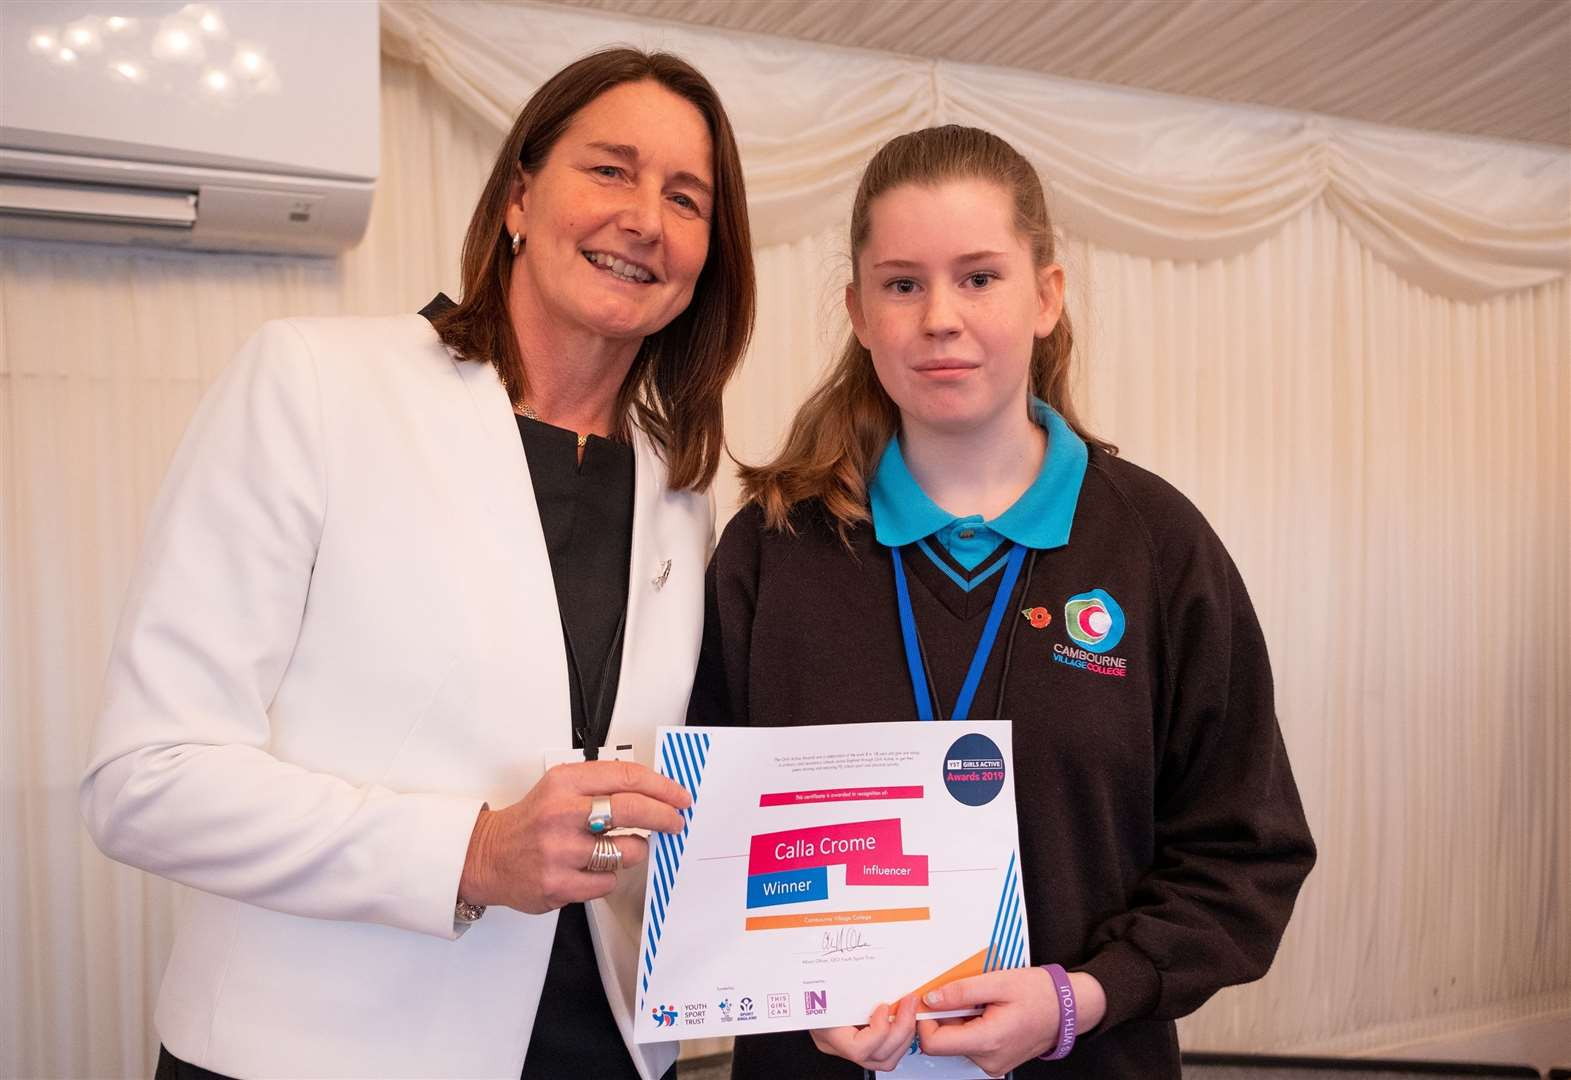 Cambourne Village College student Calla Crome recognised as influencer of the year at Girls' Active Awards 2019